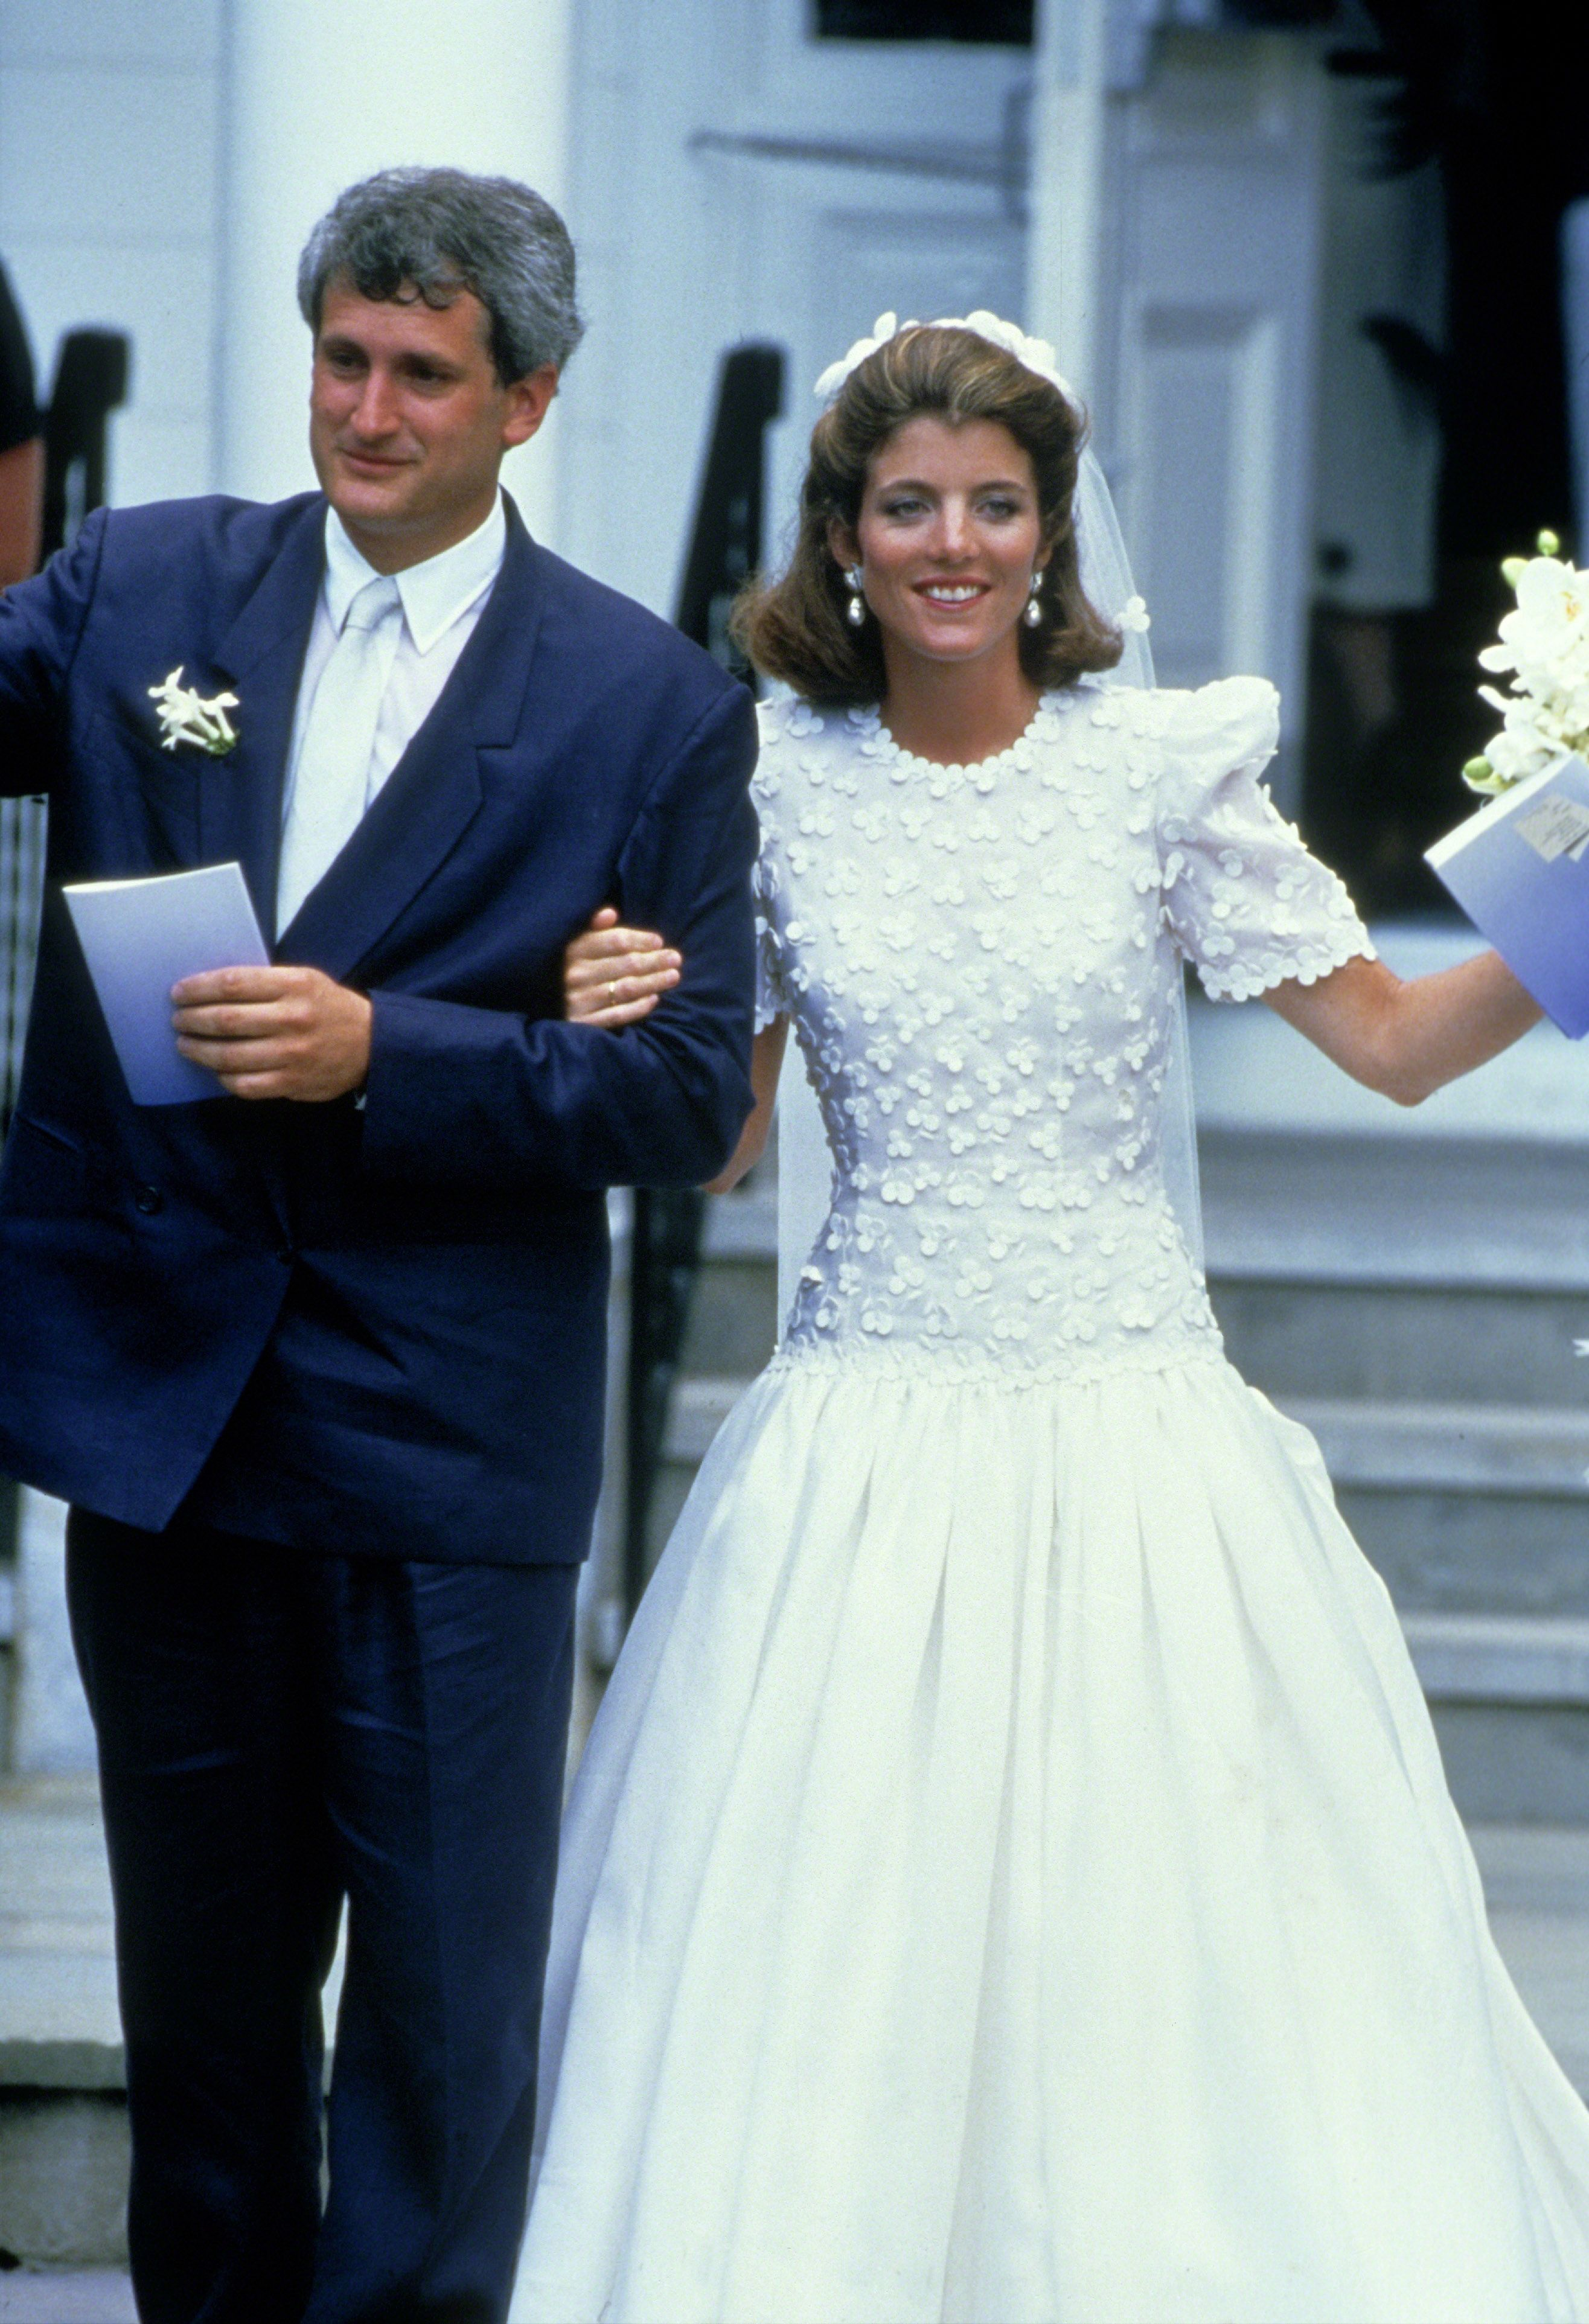 ef7215f5016 Caroline Kennedy s Wedding - Photos of Caroline Kennedy and Edwin  Schlossberg on Their Wedding Day